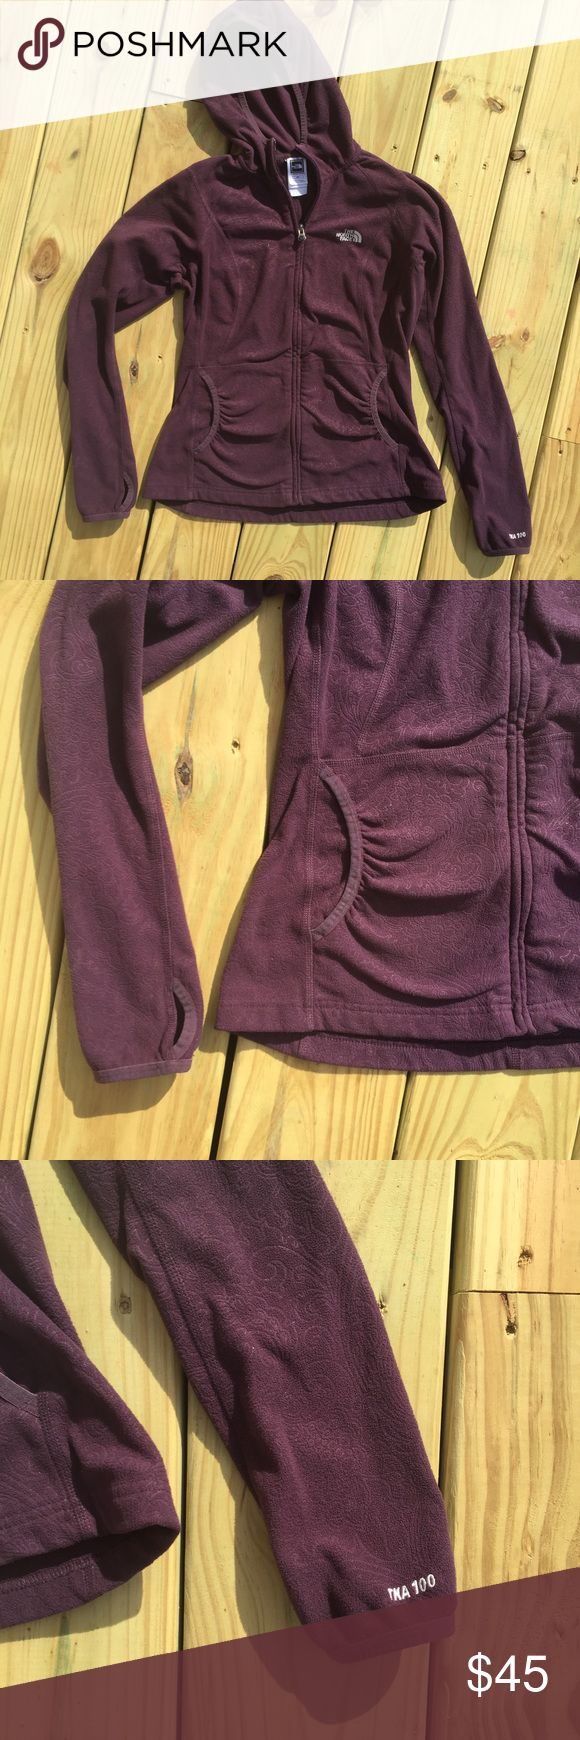 THE NORTH FACE 🐢 purple fleece zip up cute jacket The perfect 👌🏼 shade of aubergine - this is a warm and comfortable womens ladies authentic The North Face full zip fleece jacket sweater pullover hoody. Jacket features two pockets, flattering shirred sides, thumb holes, a hood , and subtle soft brocade paisley pattern throughout. Sized small, this gently preloved 🎀 hoodie is in great condition! The North Face Jackets & Coats Utility Jackets